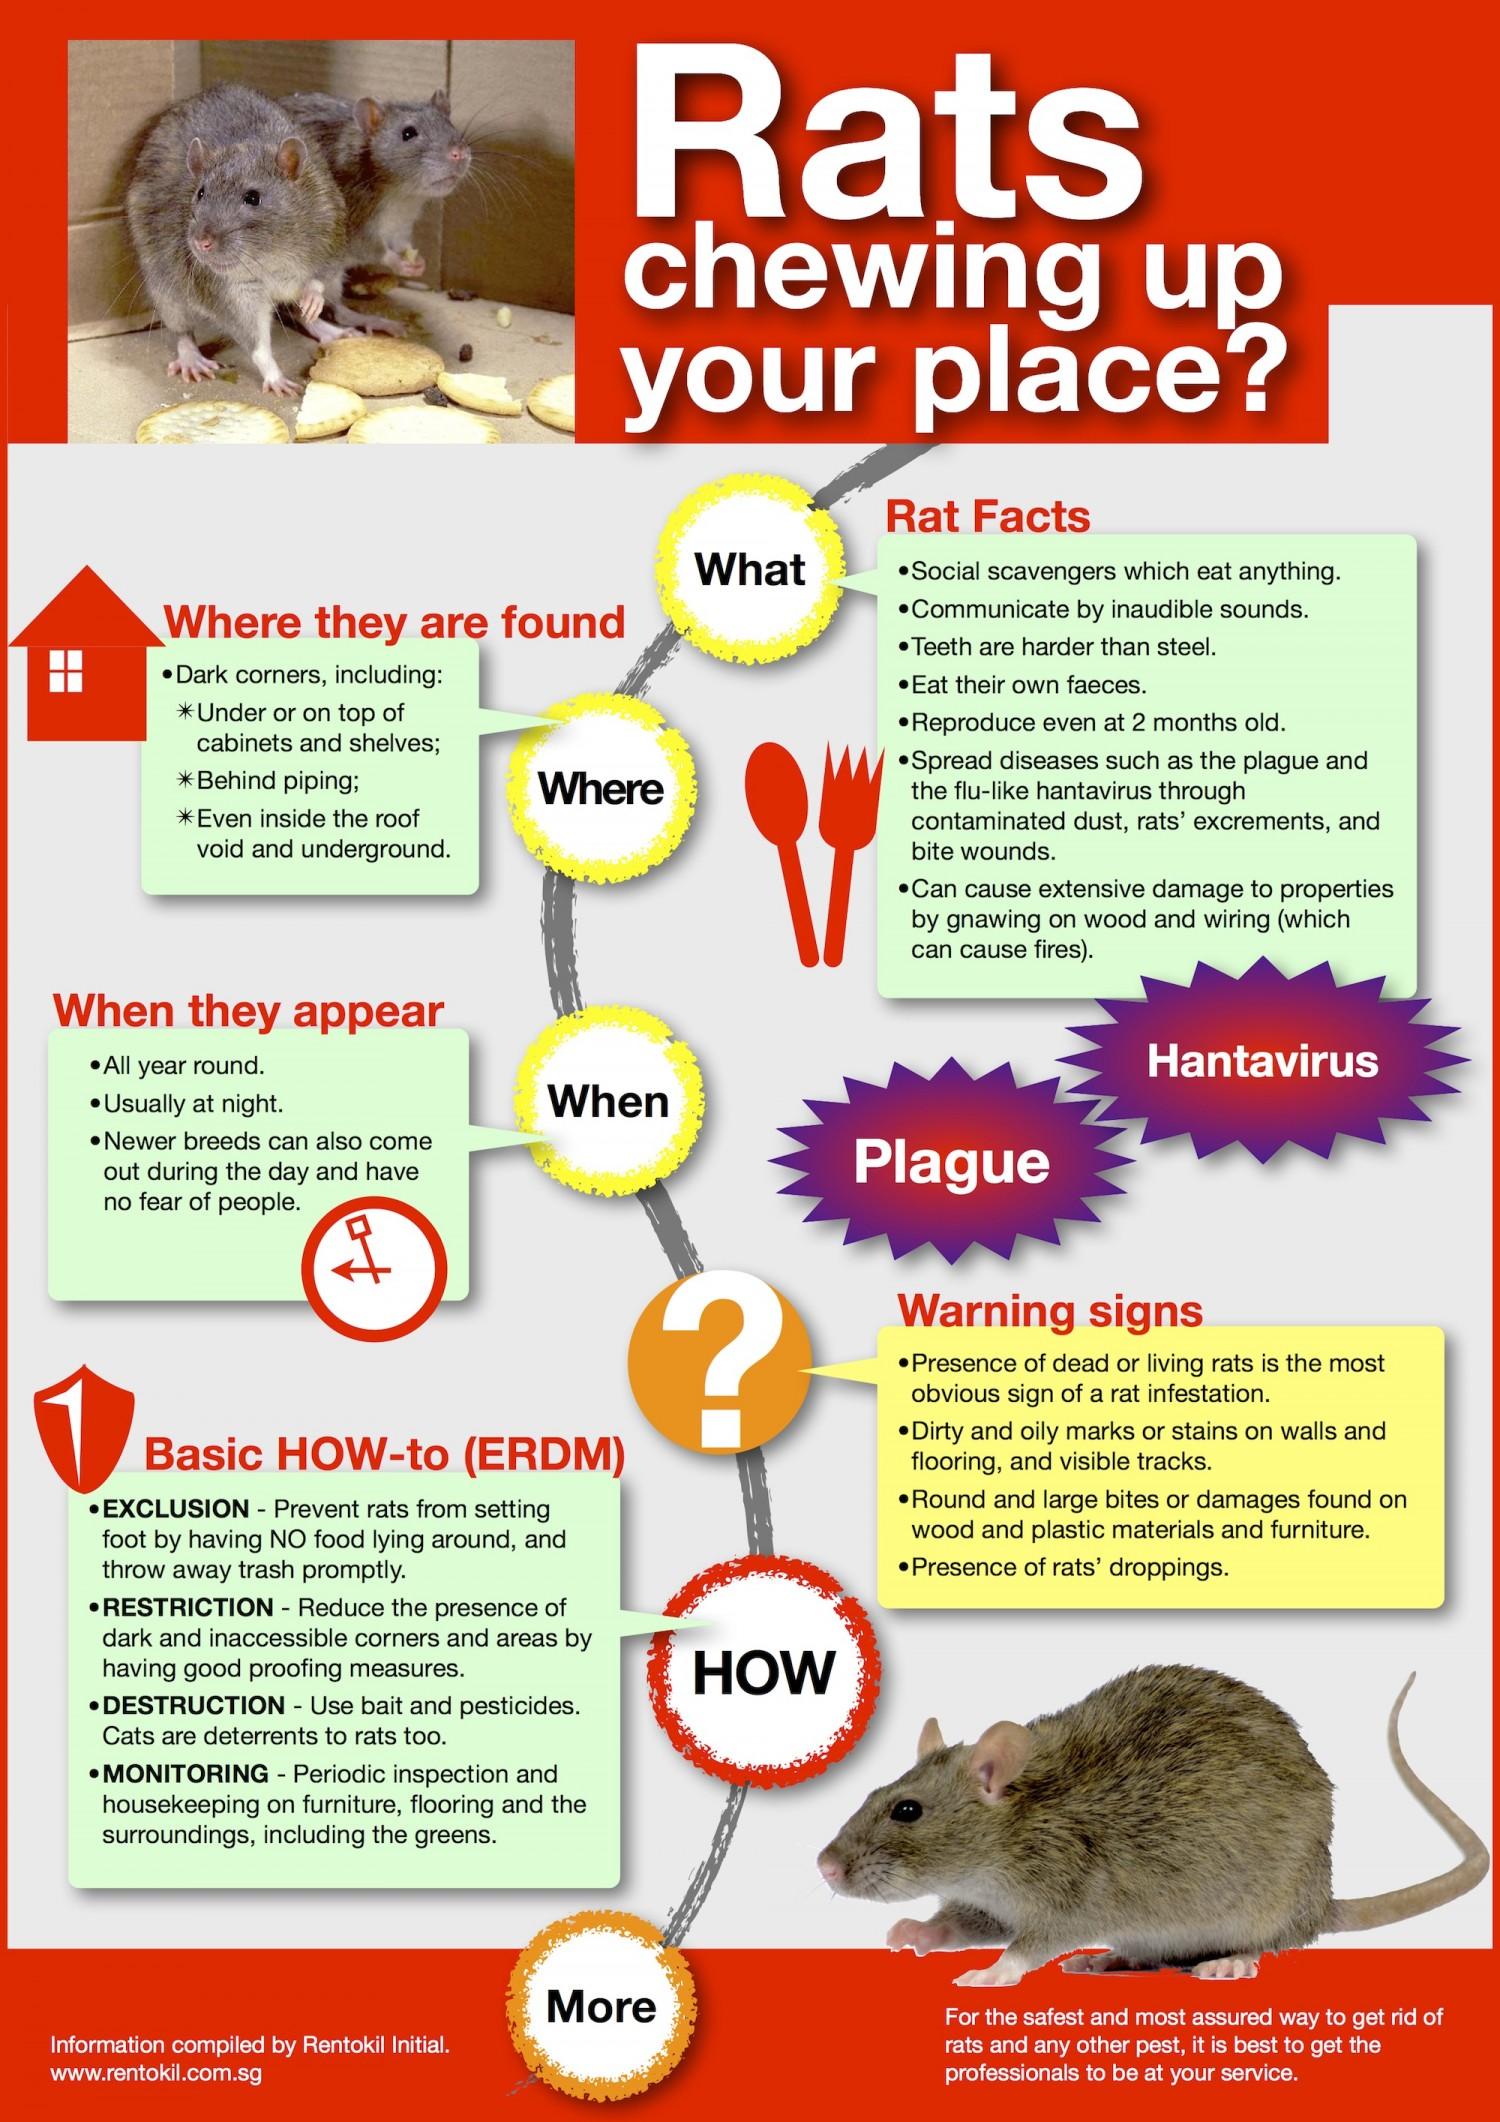 rats chewing up your place-Rat Facts and where they found